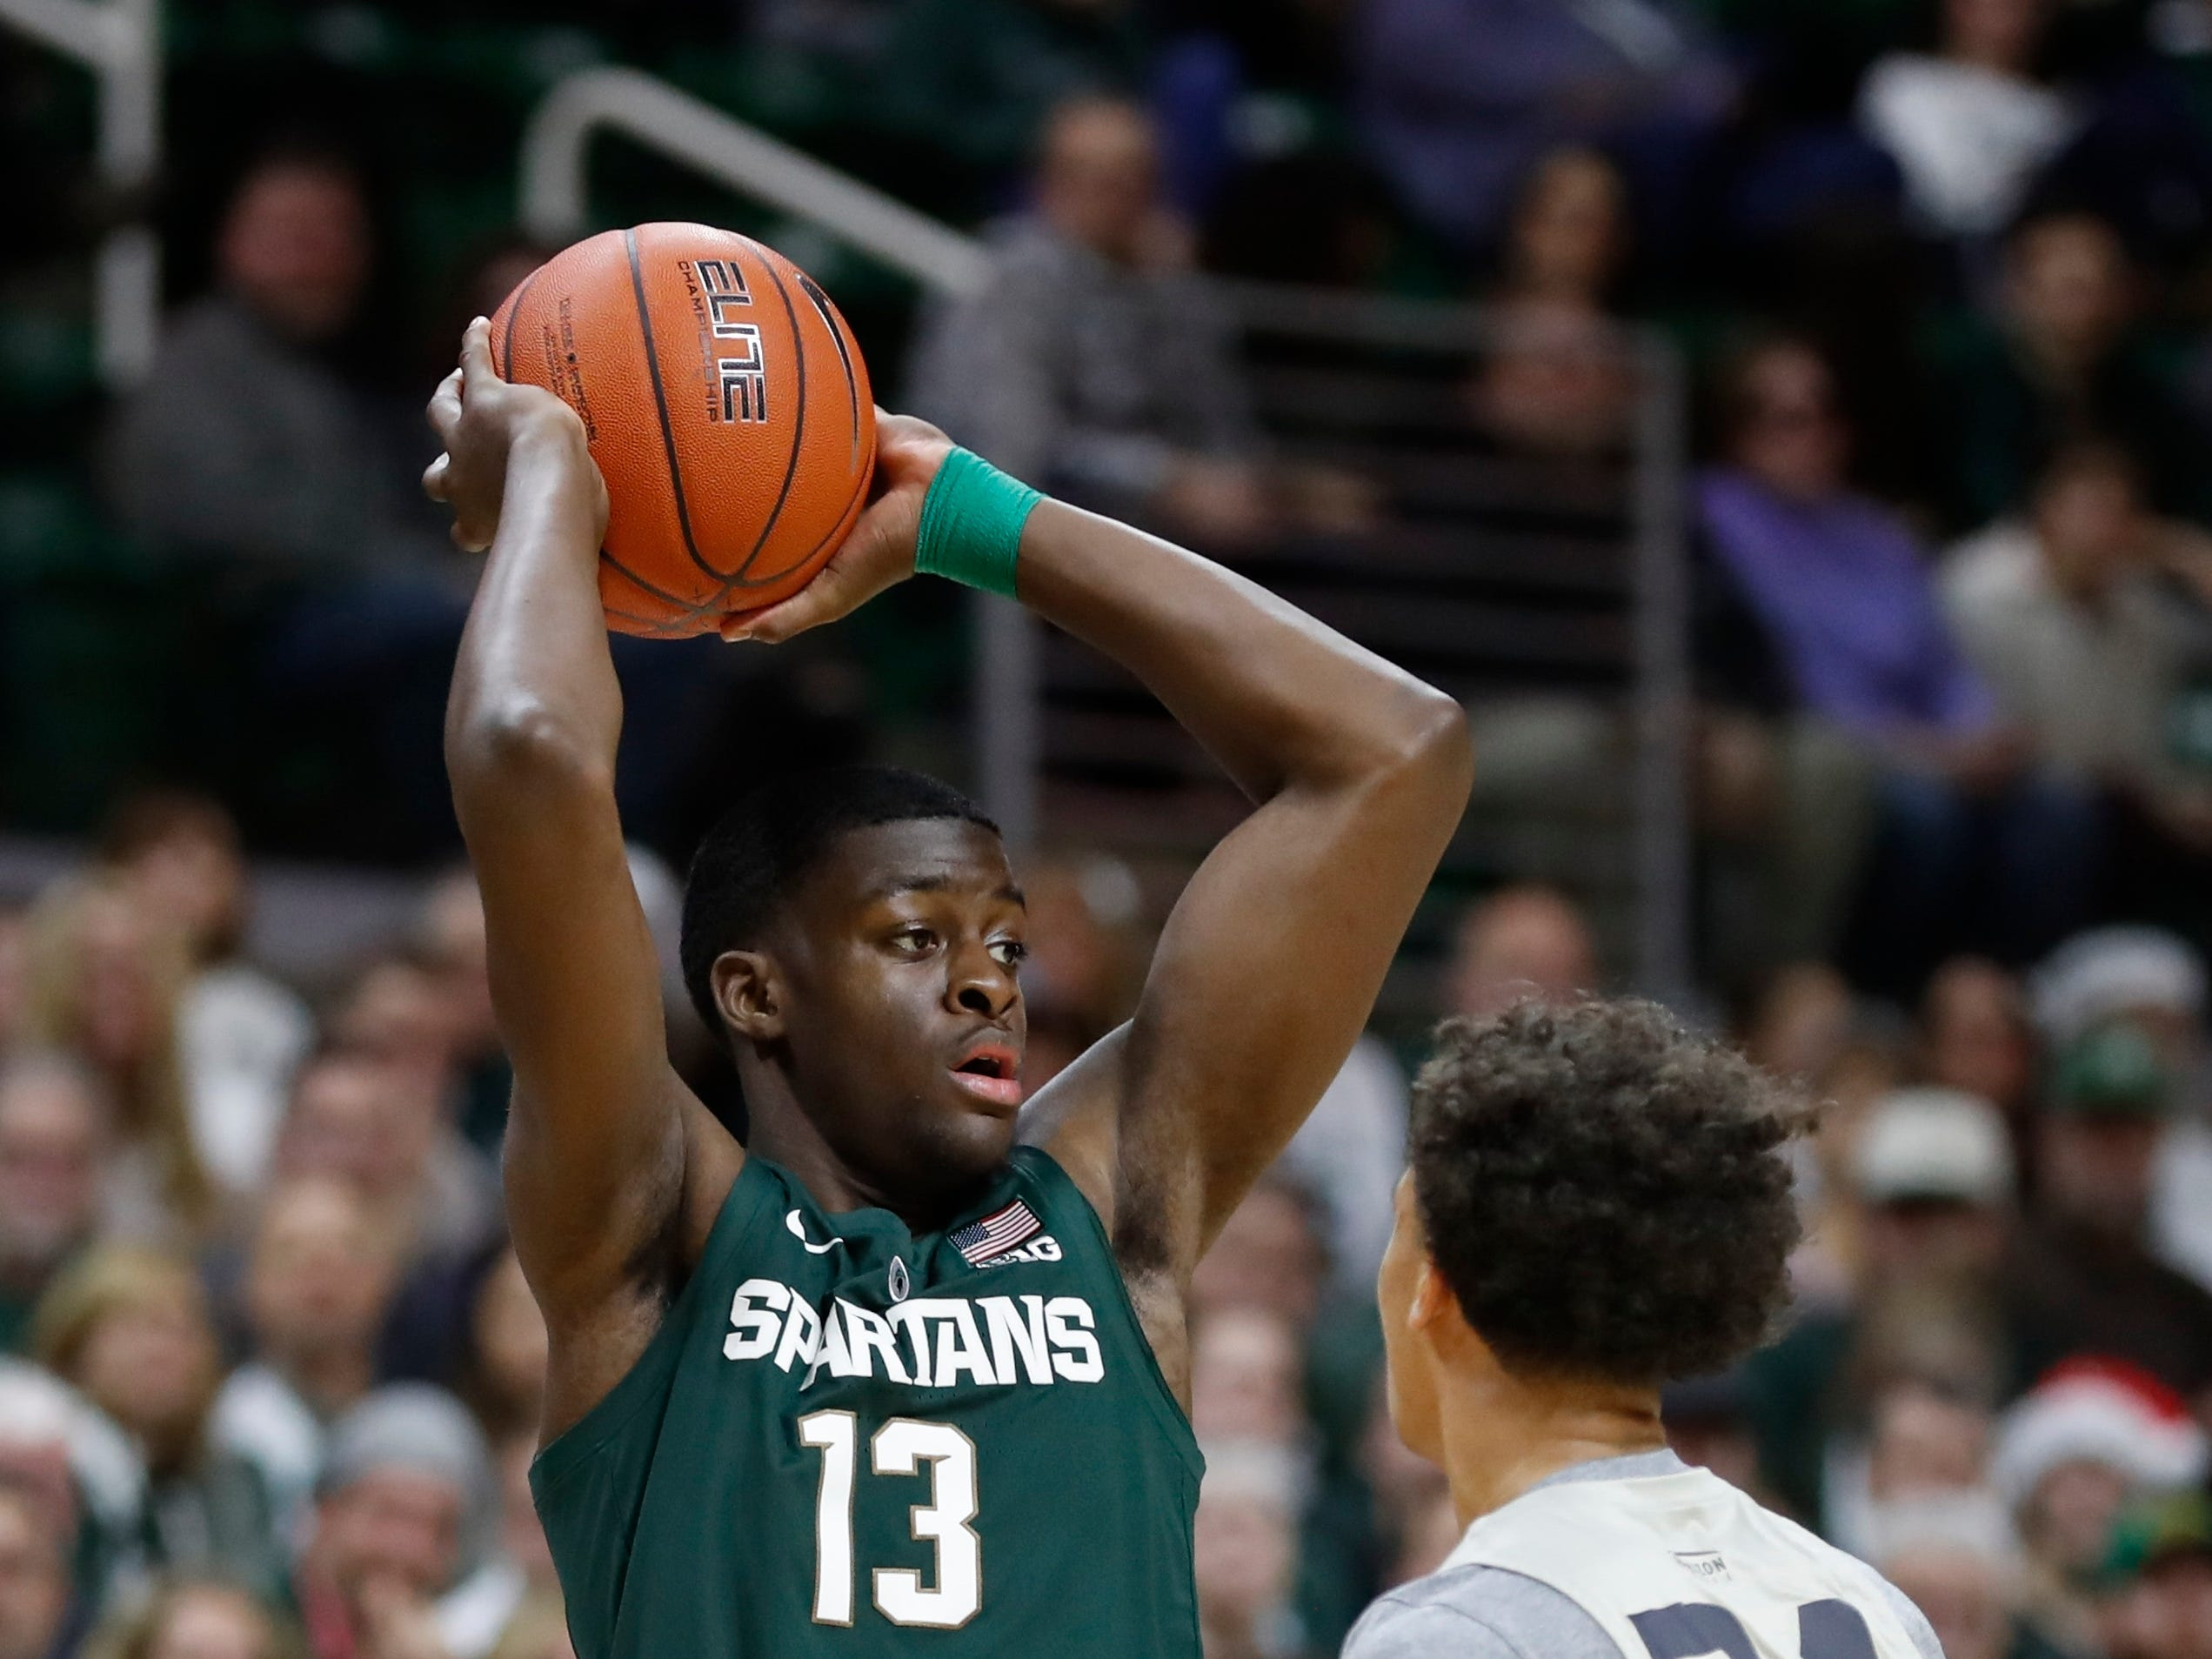 Michigan State forward Gabe Brown looks to pass during the second half of an NCAA college basketball game against Oakland, Friday, Dec. 21, 2018, in East Lansing, Mich.